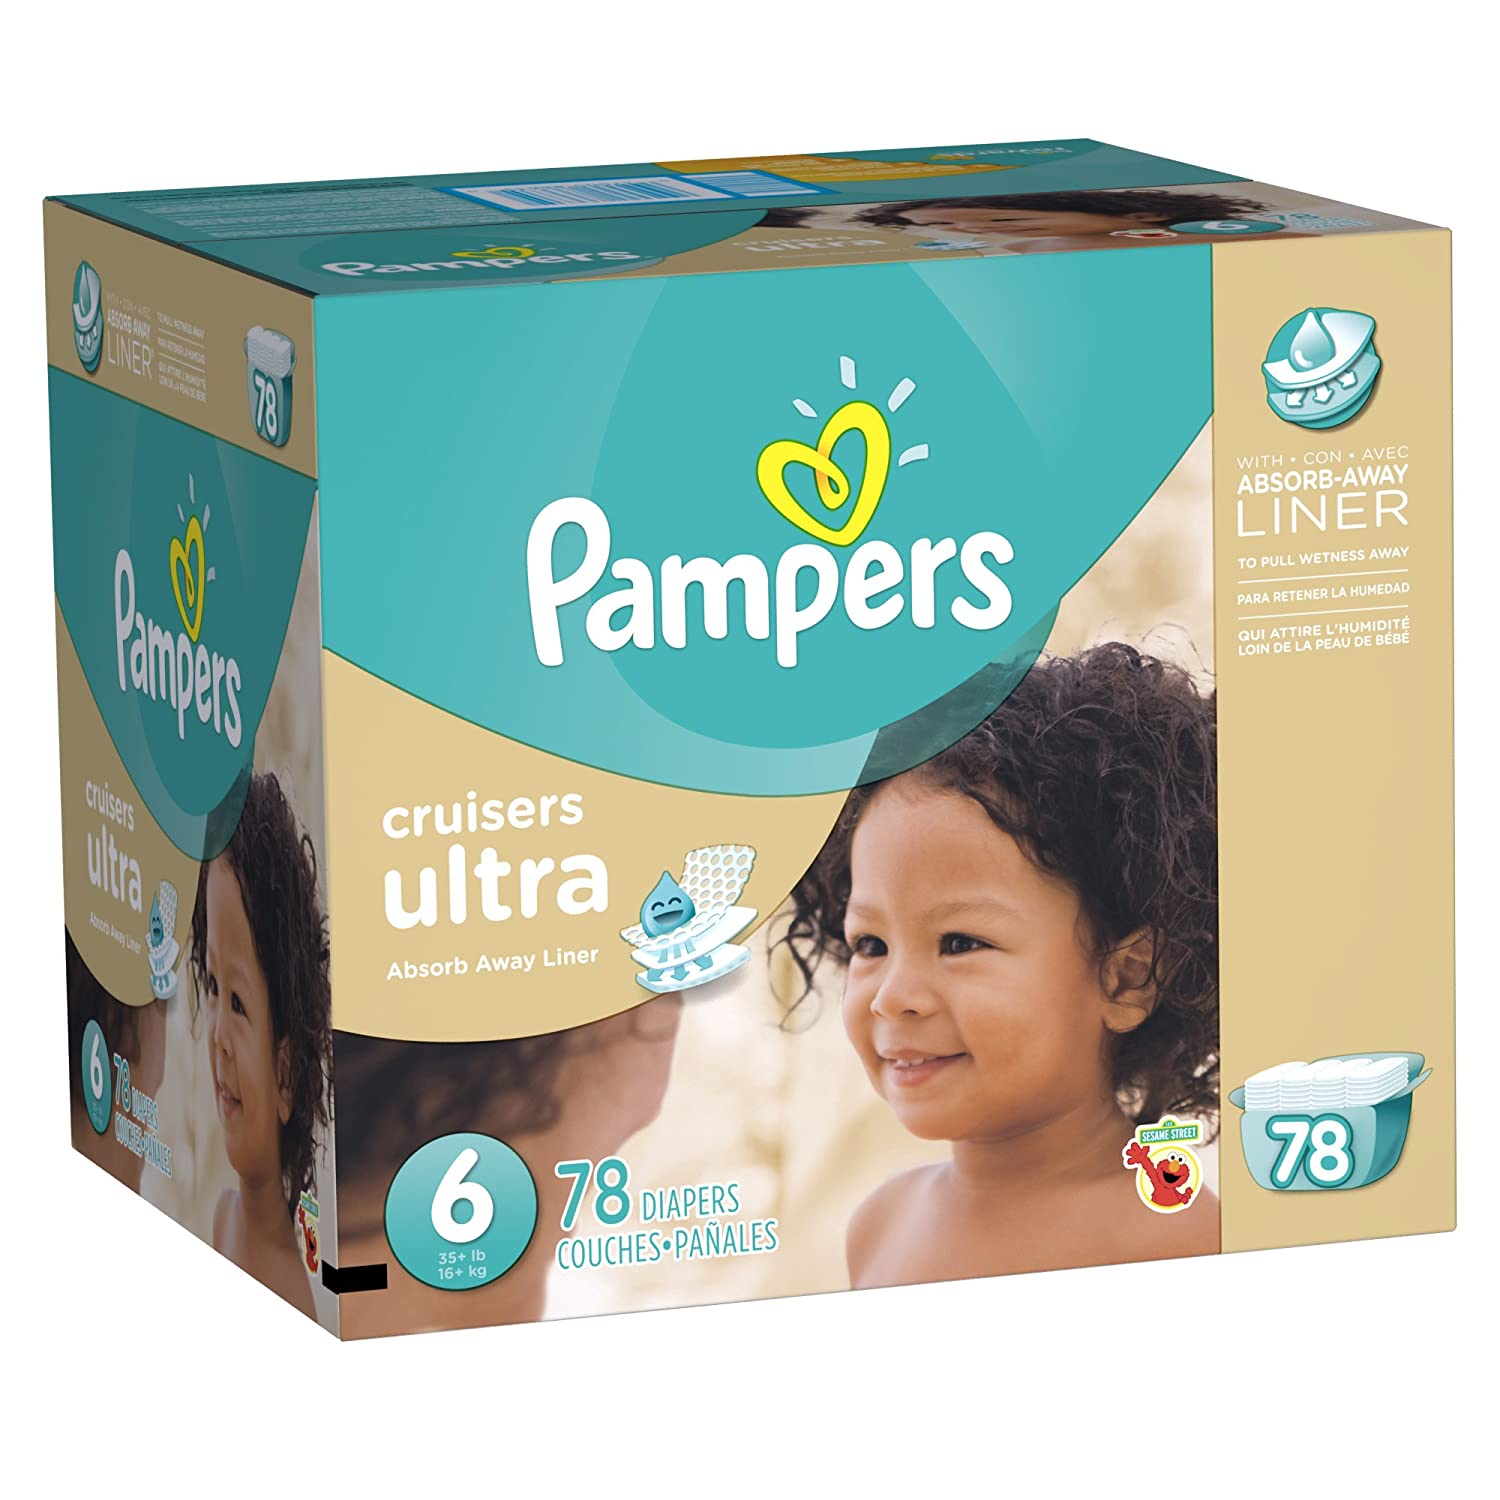 Amazon.com: Pampers Cruisers Ultra, Size 6, 78 Count: Health & Personal Care